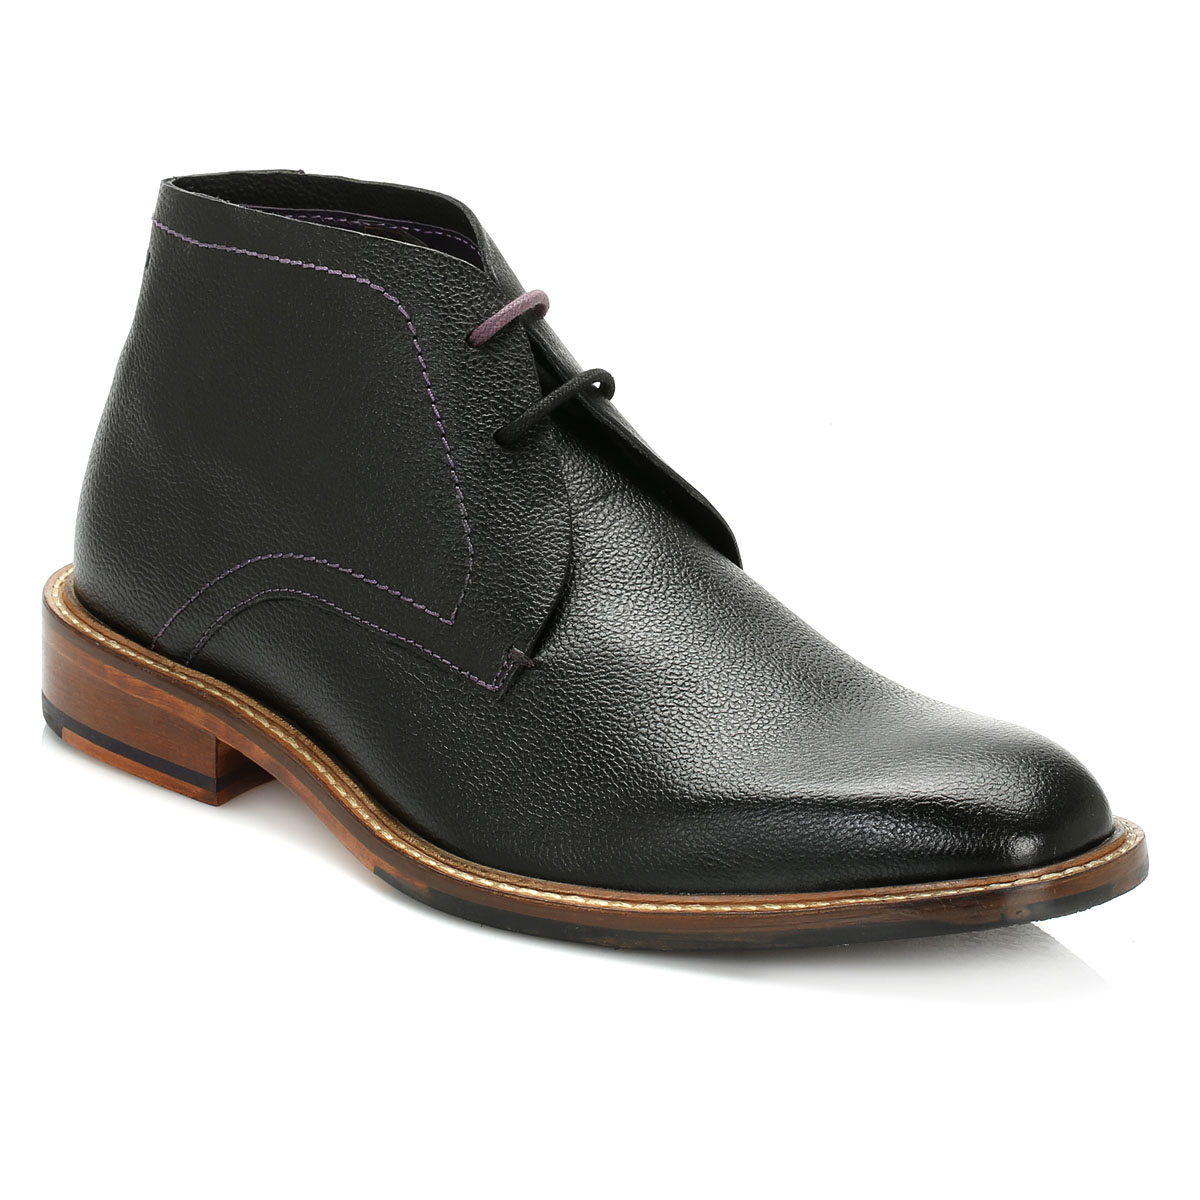 b9810d8c4 Ted Baker Mens Black Torsdi 4 Leather Chukka Boots Lace Up Formal ...